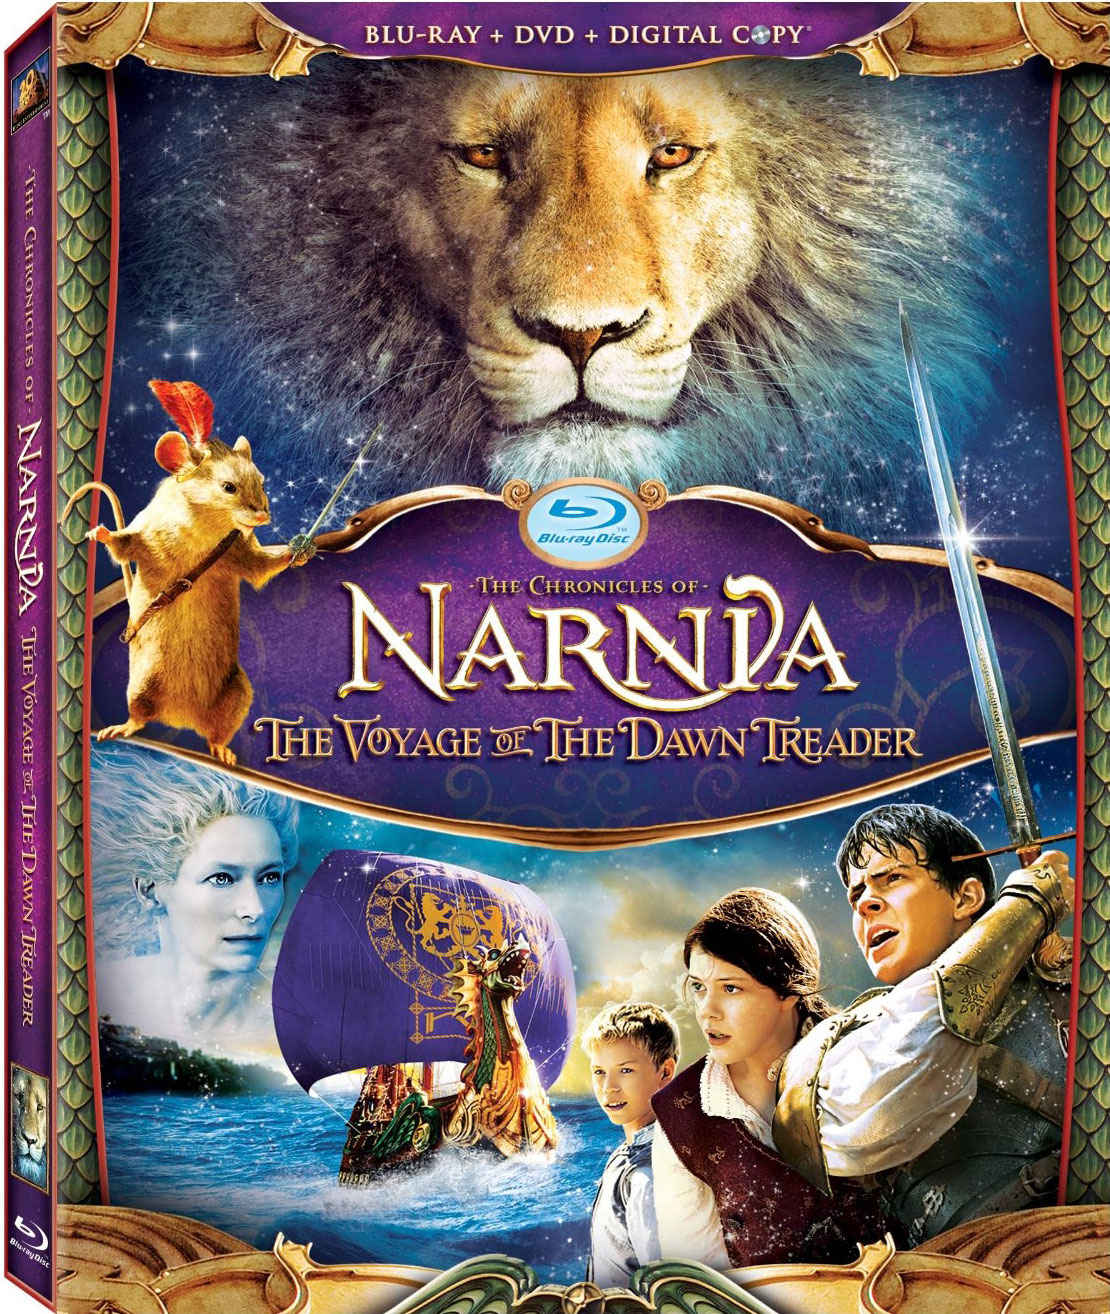 http://www.narniafans.com/wp-content/uploads/2011/01/dawn-treader-blu-ray-cover.jpg